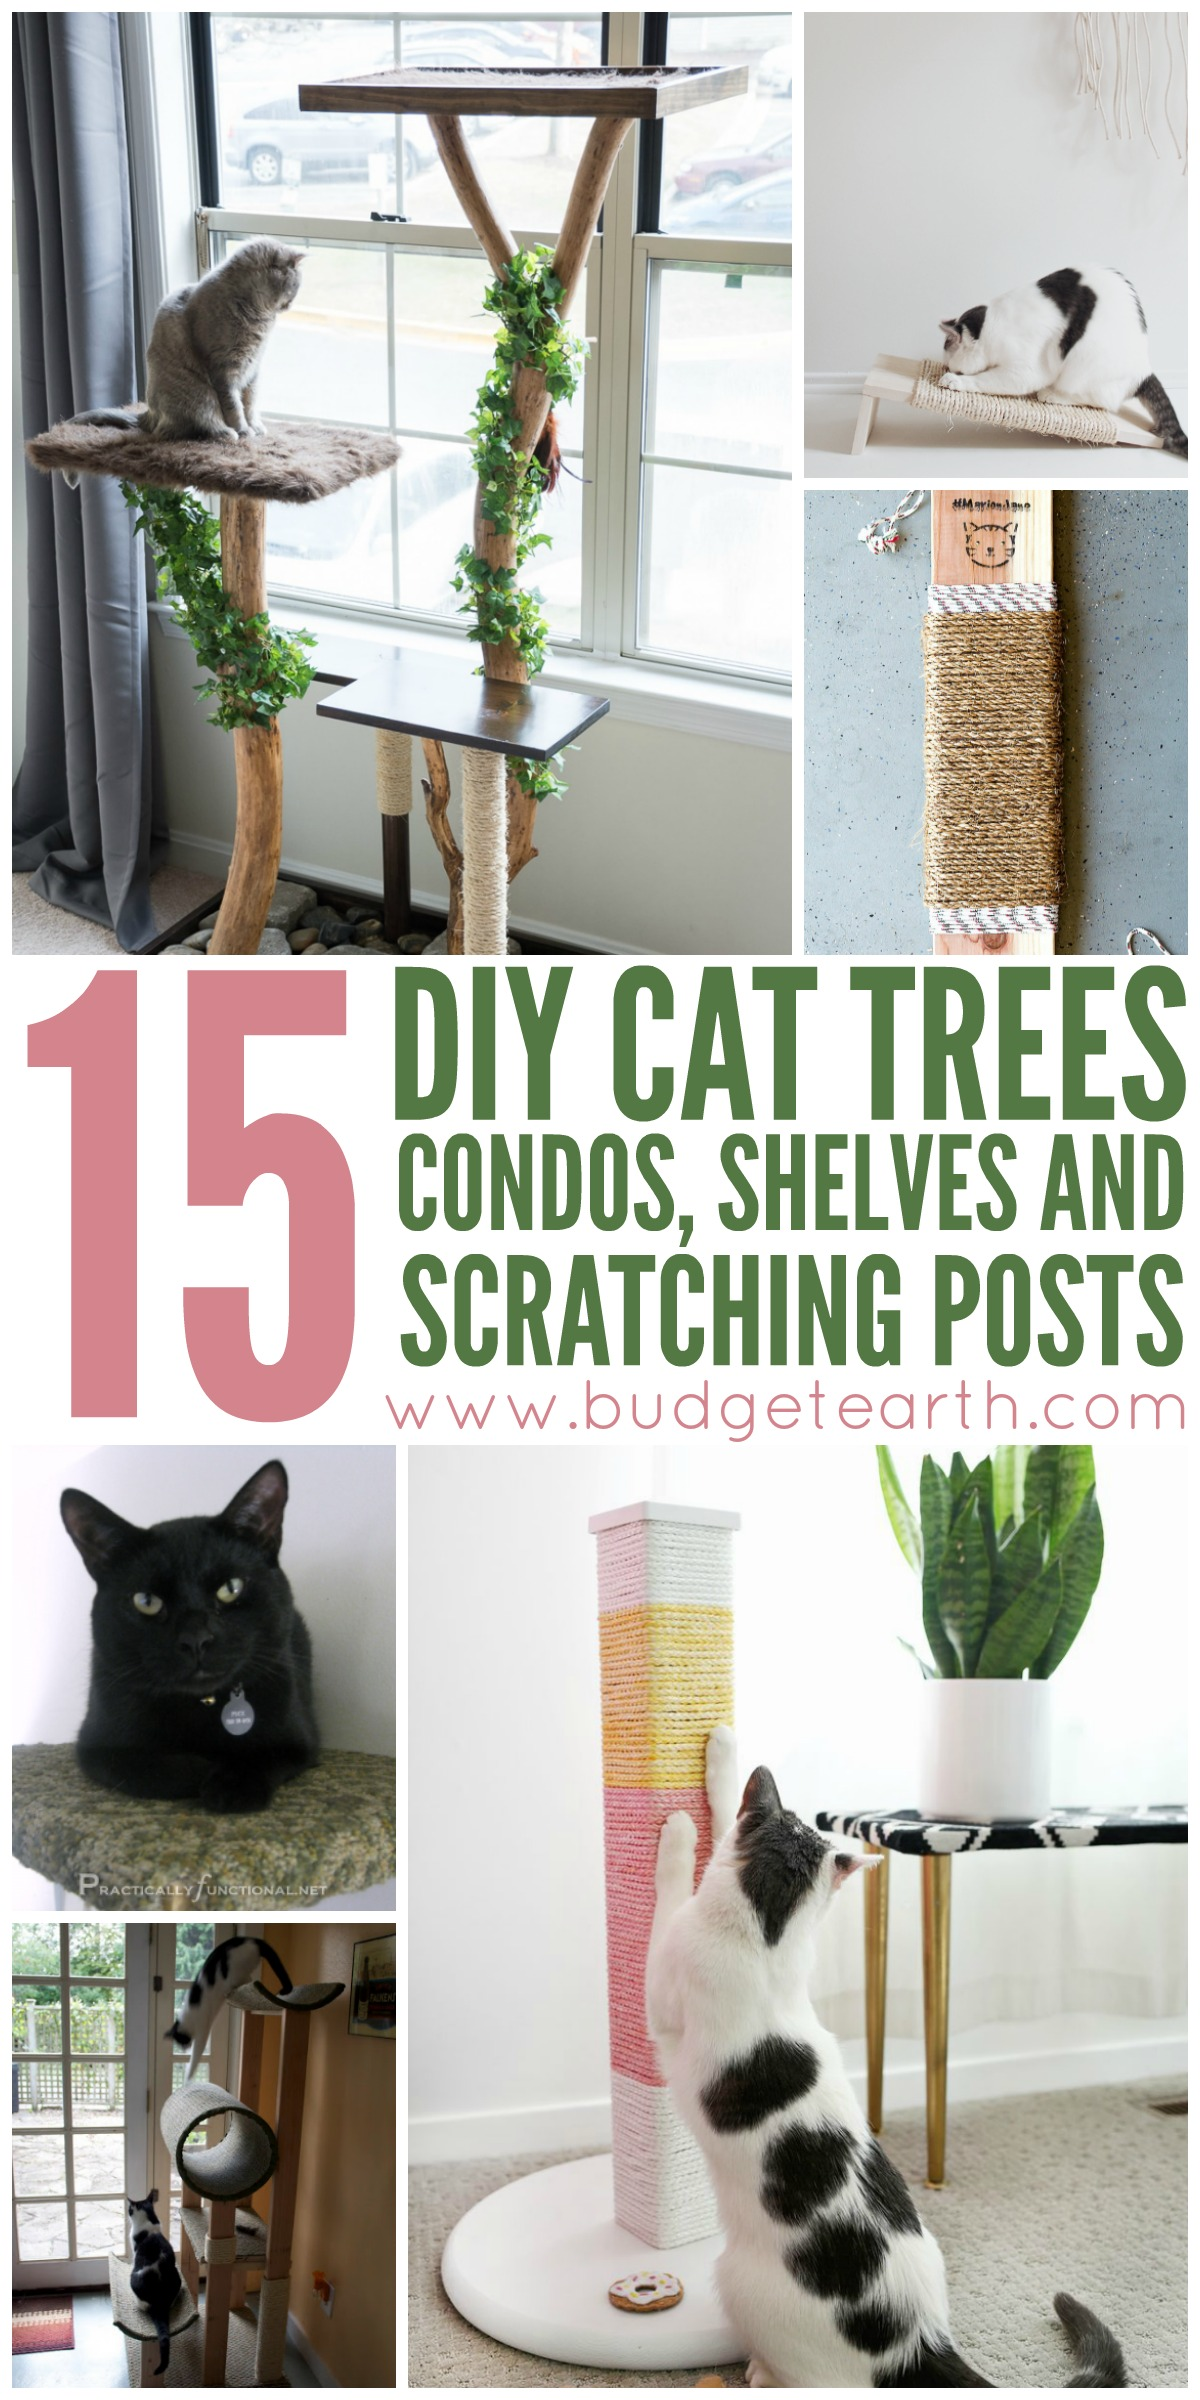 Want to spoil your cat? Check out these 15 DIY Cat Trees, Condos, and Scratching posts projects here!